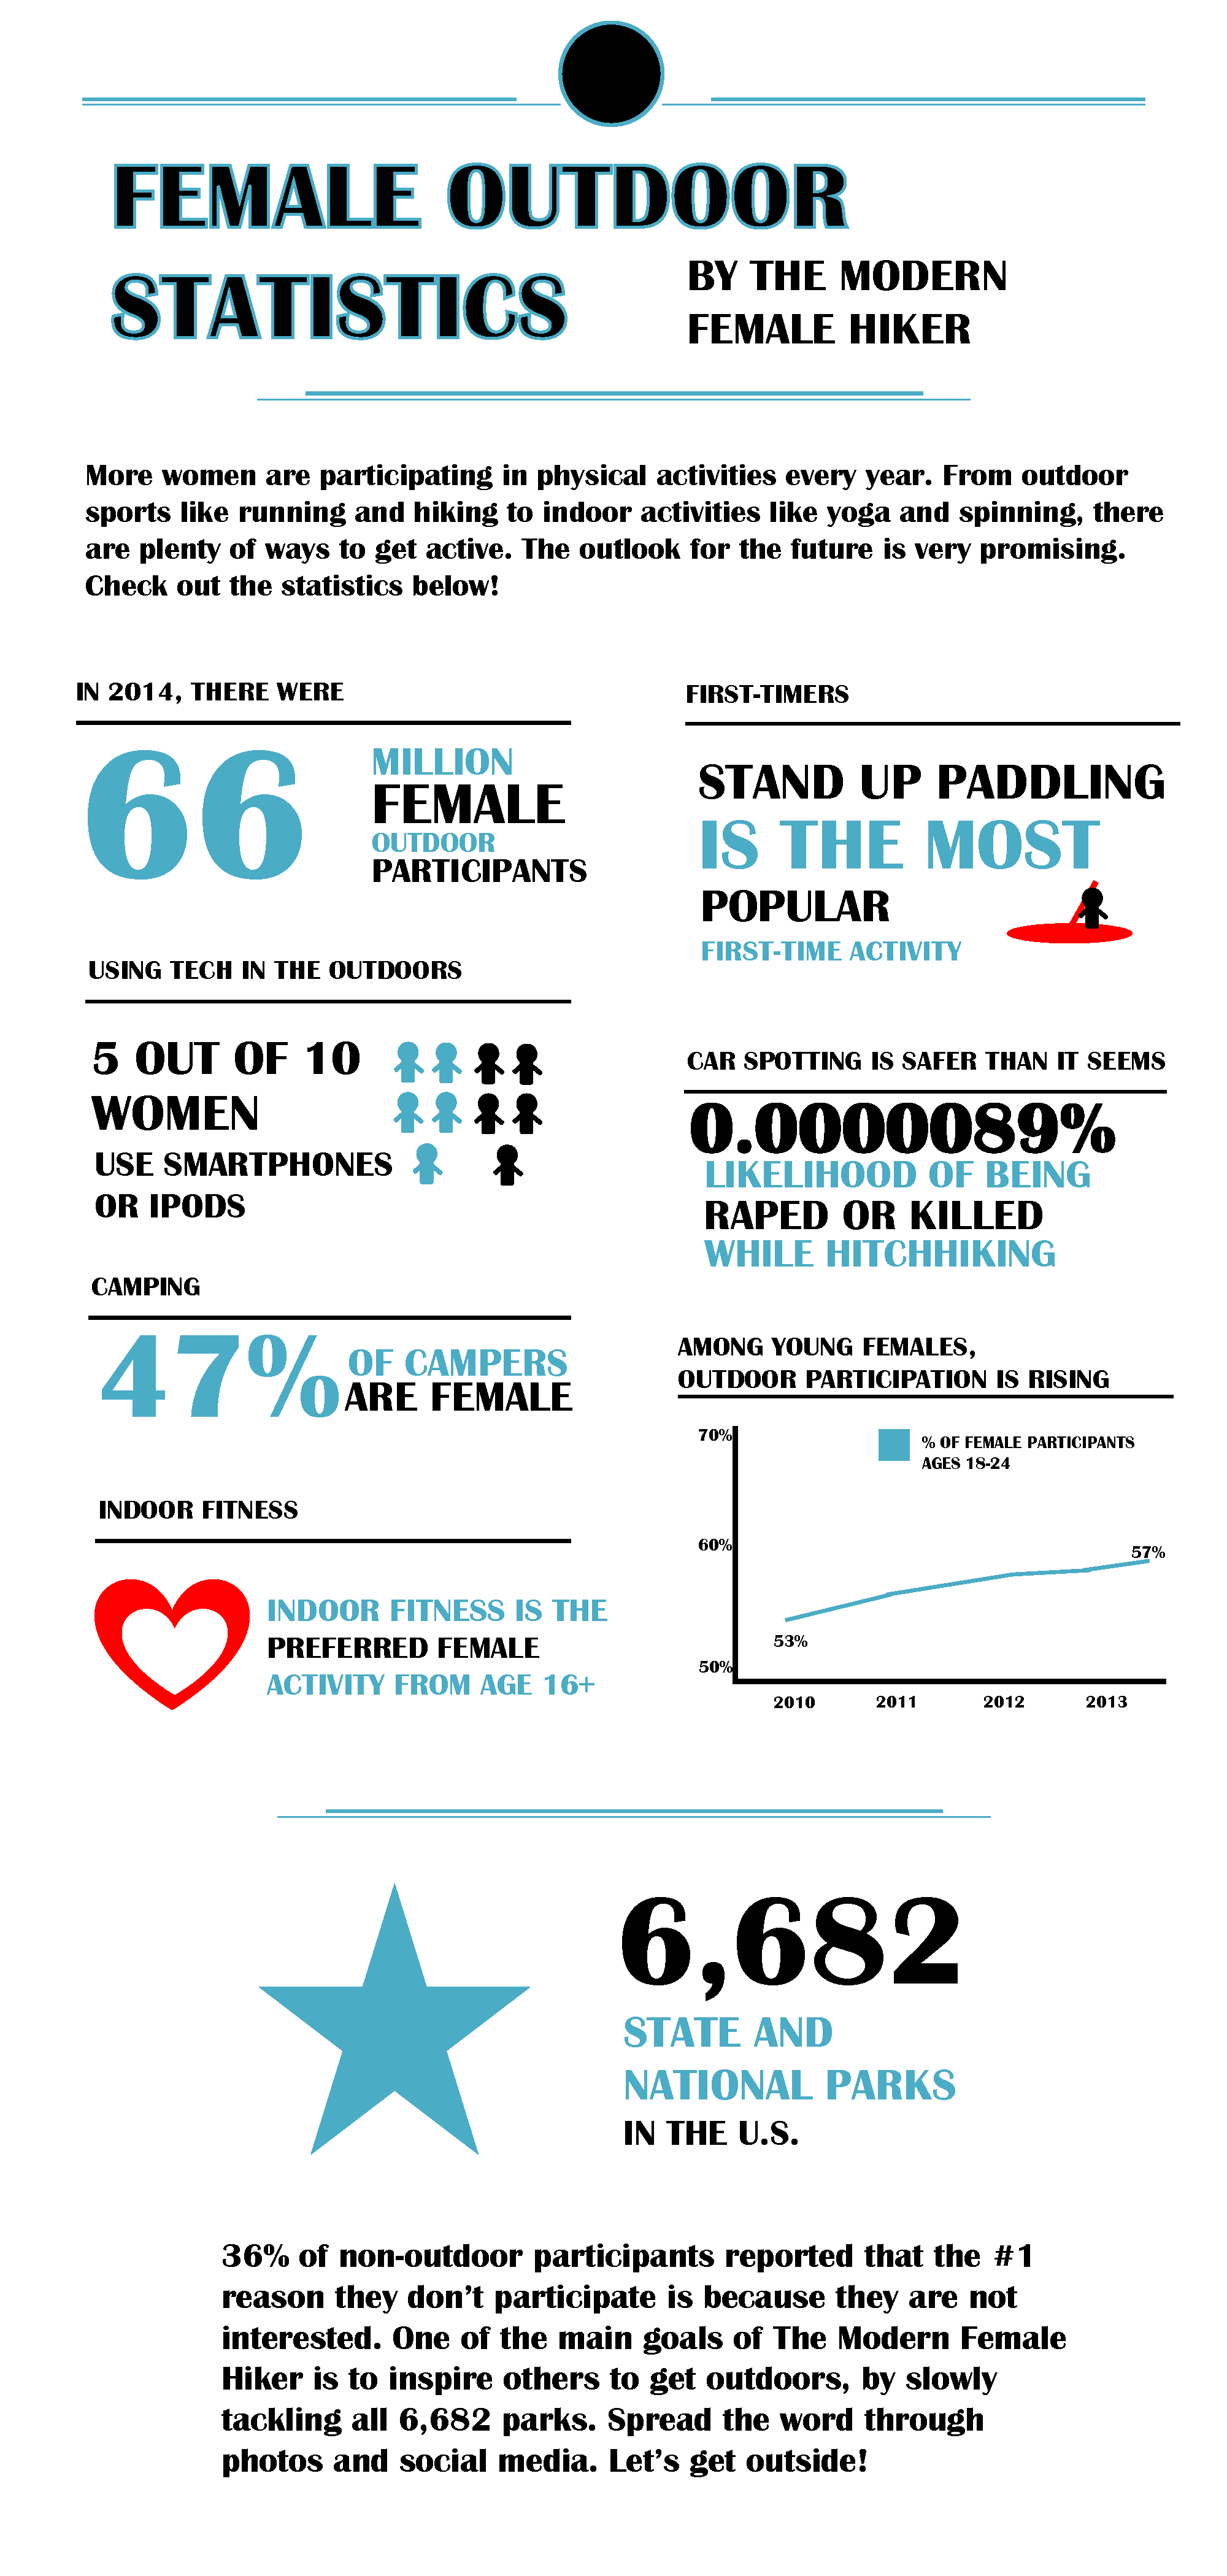 Infographic on Female Outdoor Statistics